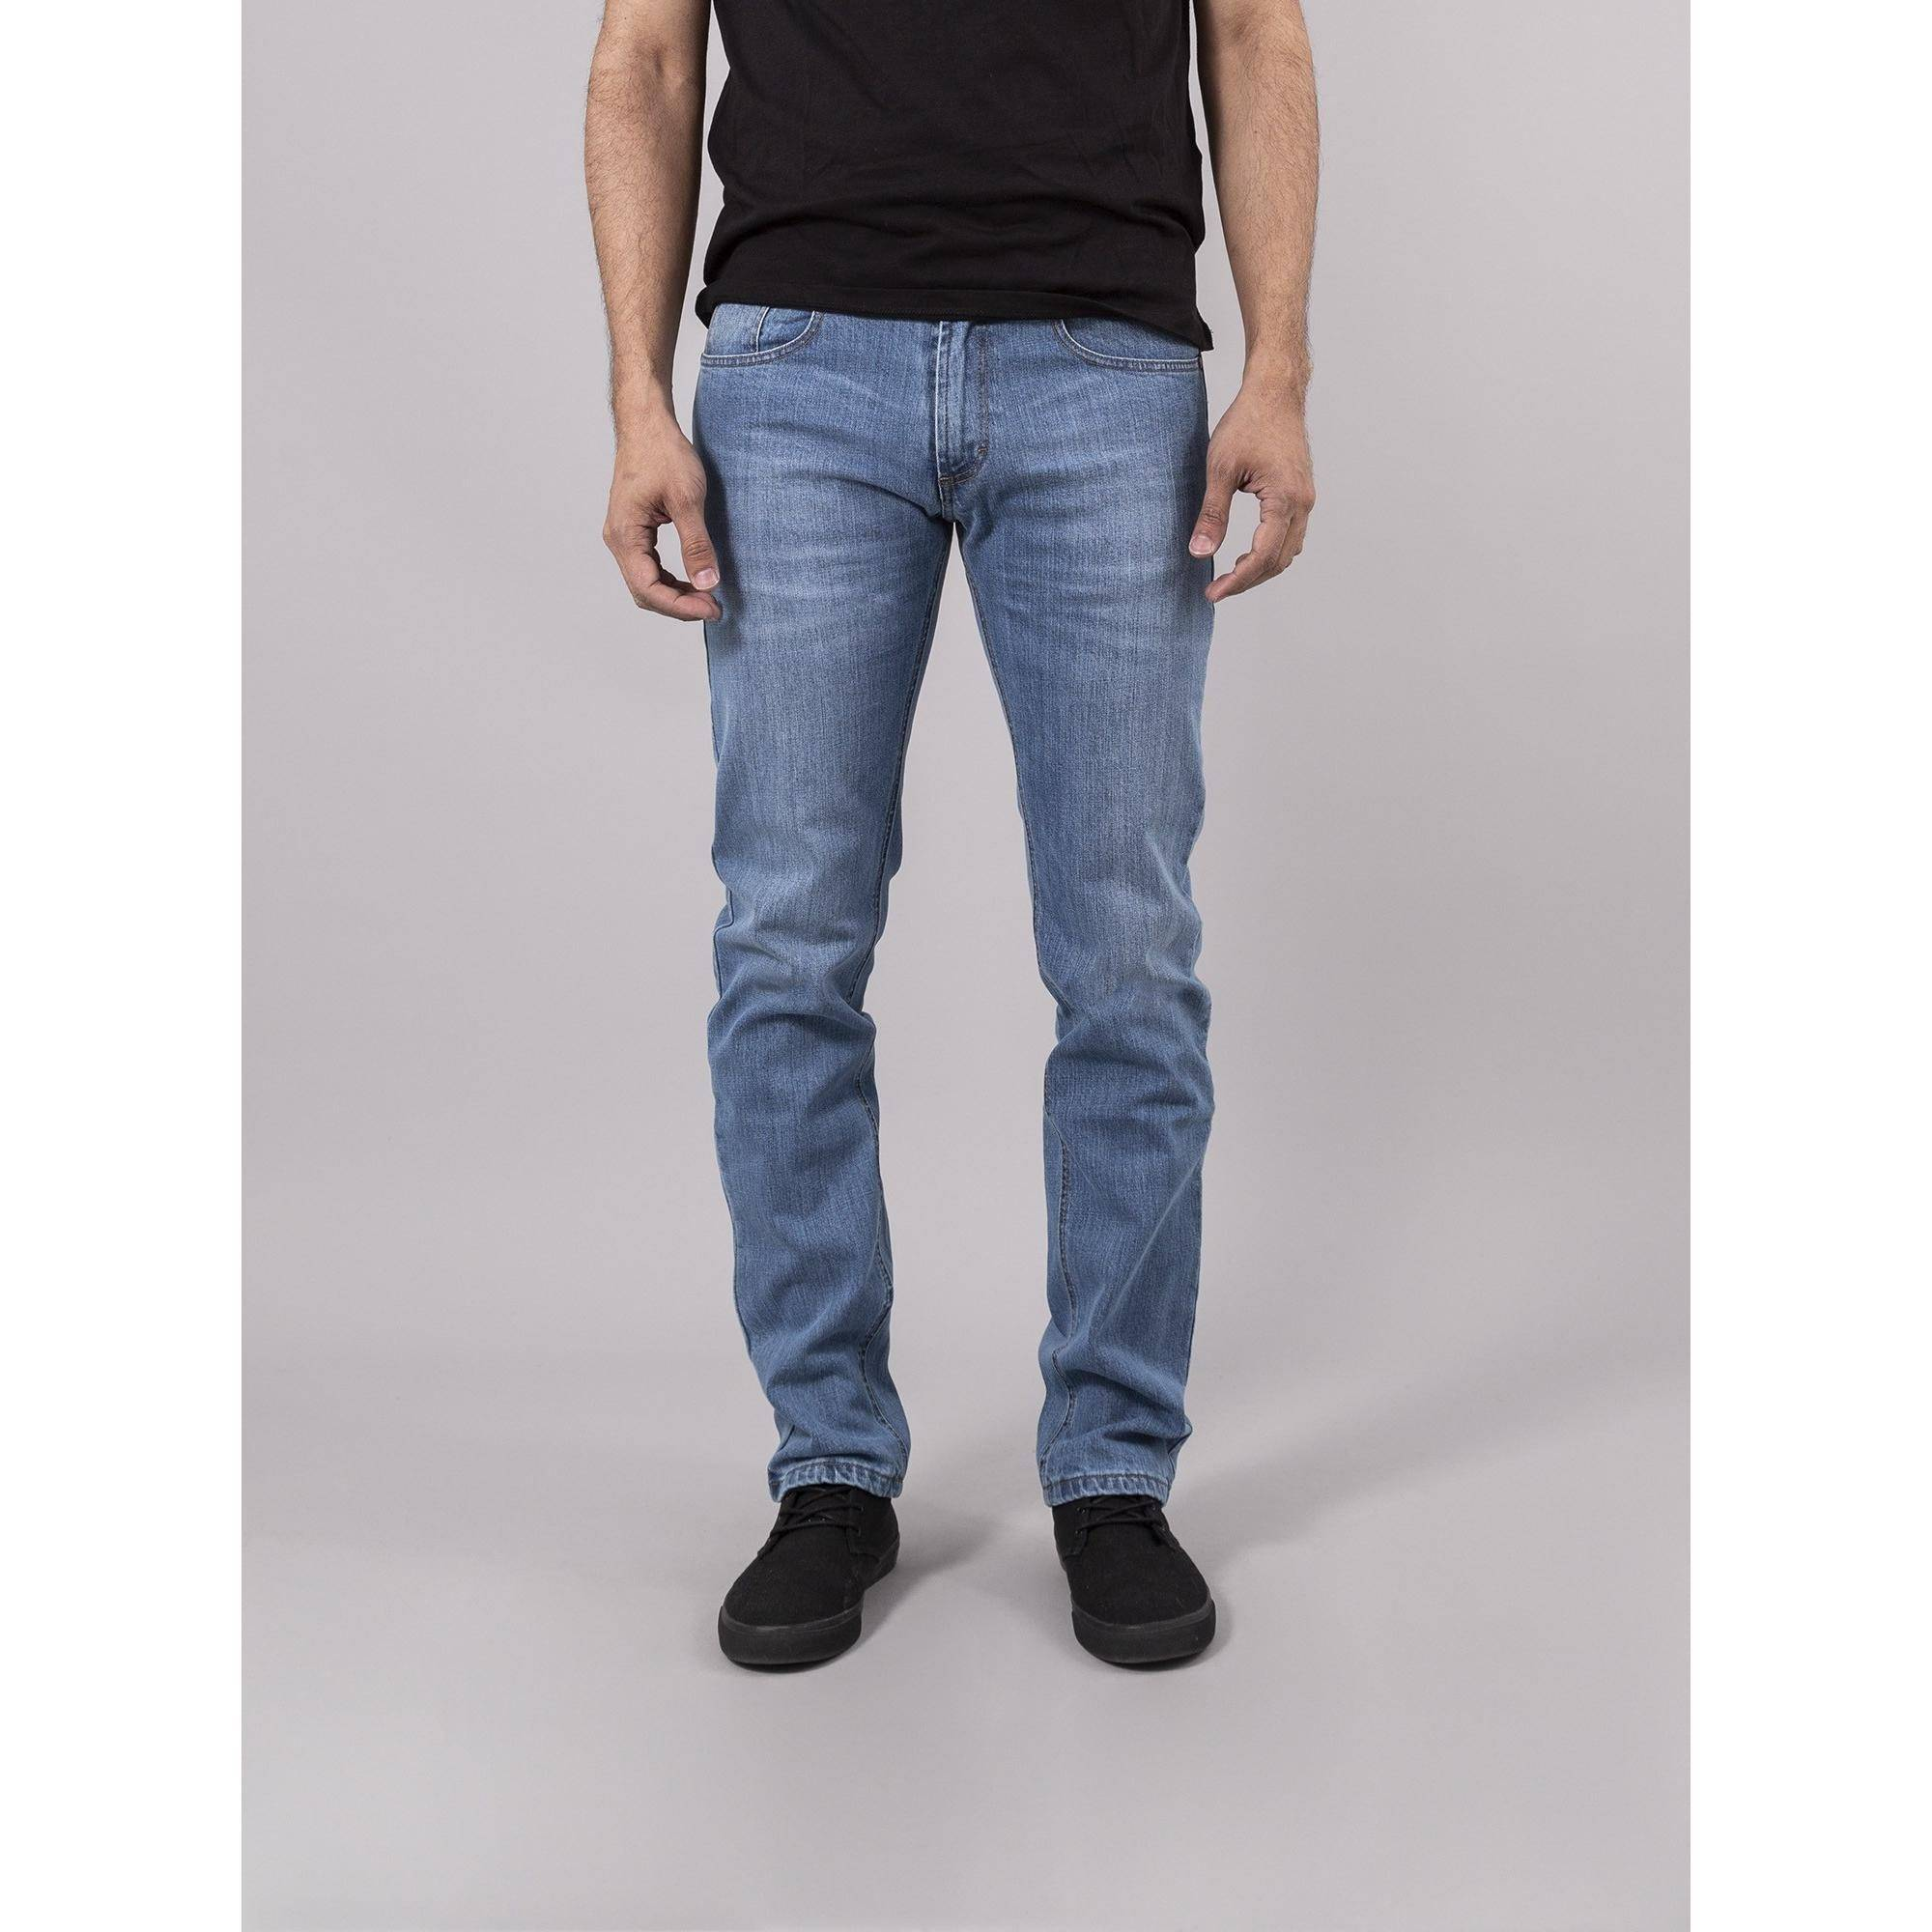 Capitán Denim Pantalones Ray Sunny Blue WATERLESS Capitán Denim 44